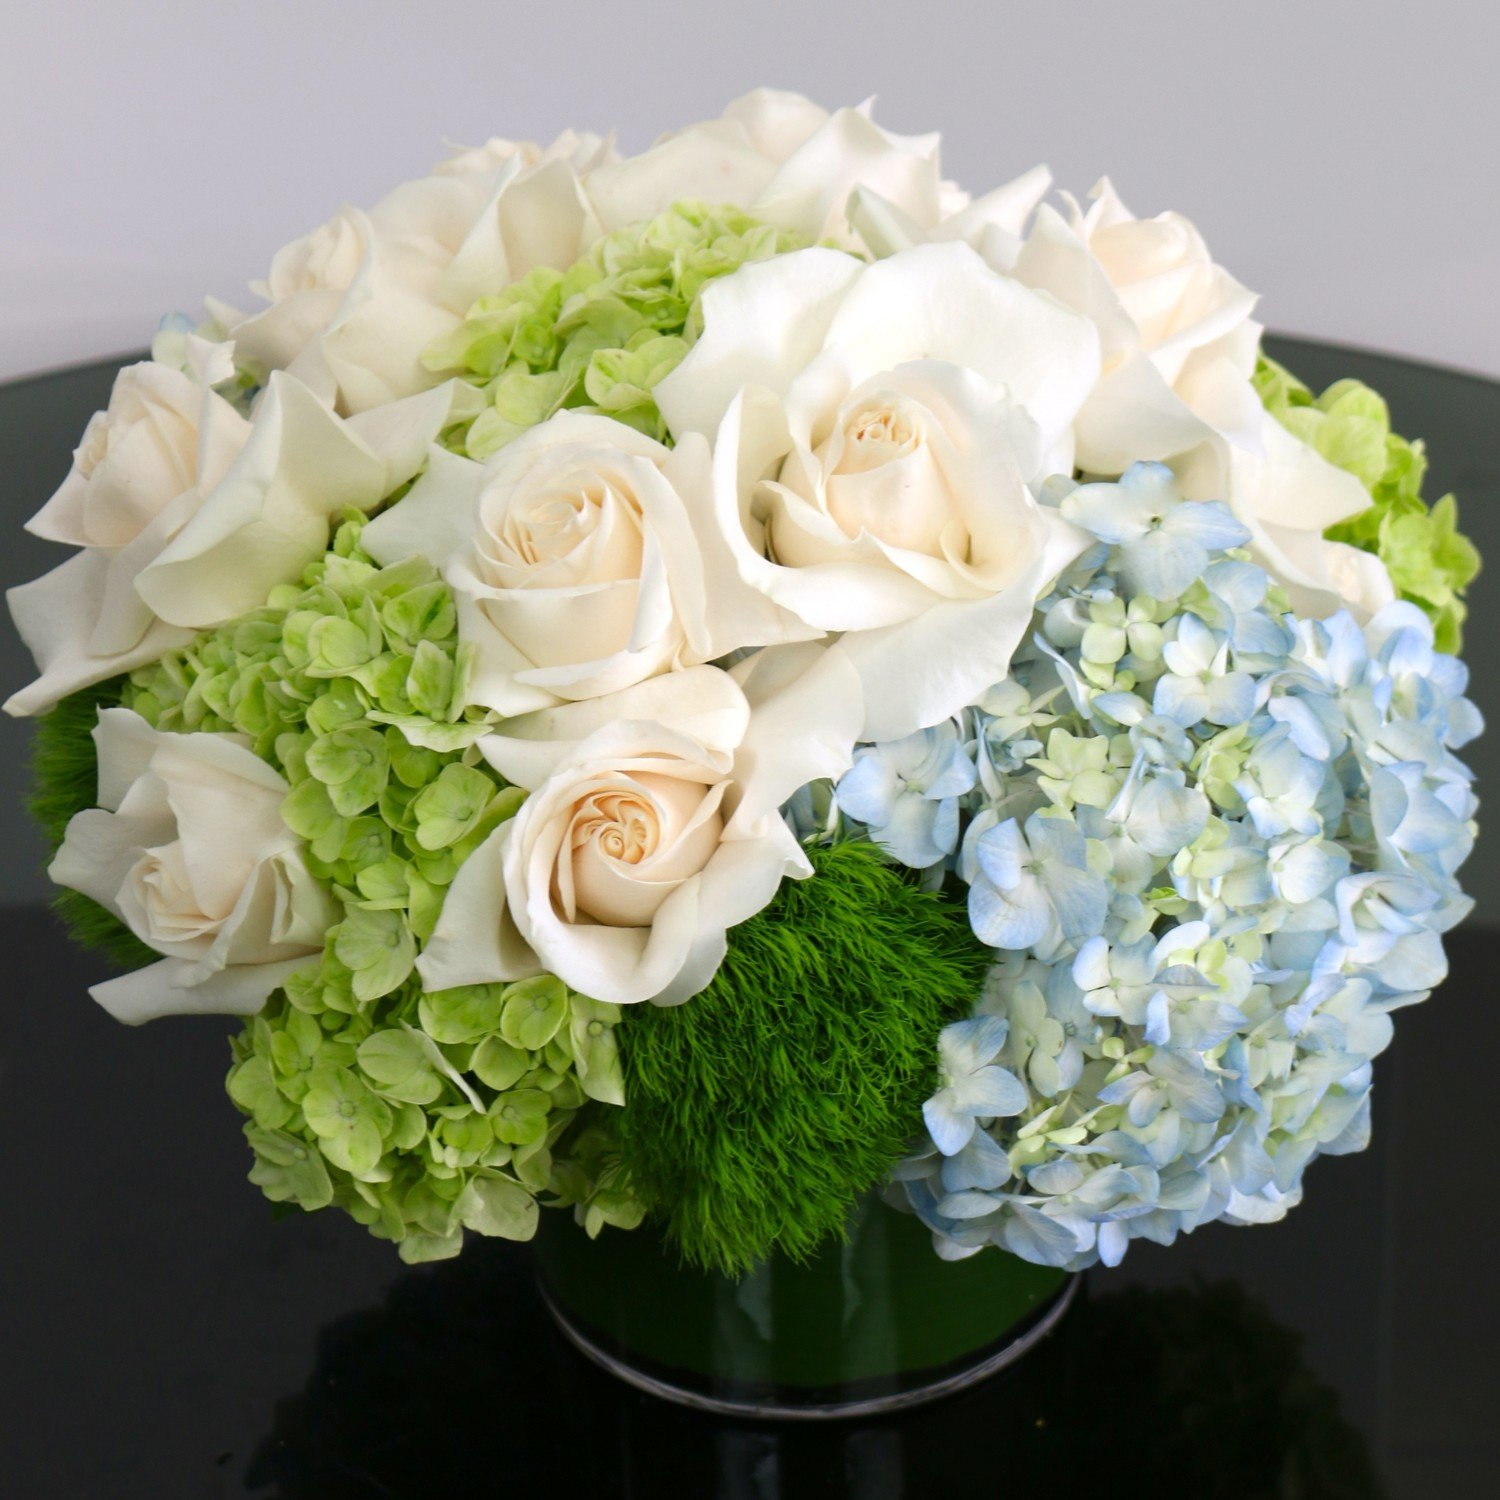 White and Cream with Blue and Green by Twigs Florist